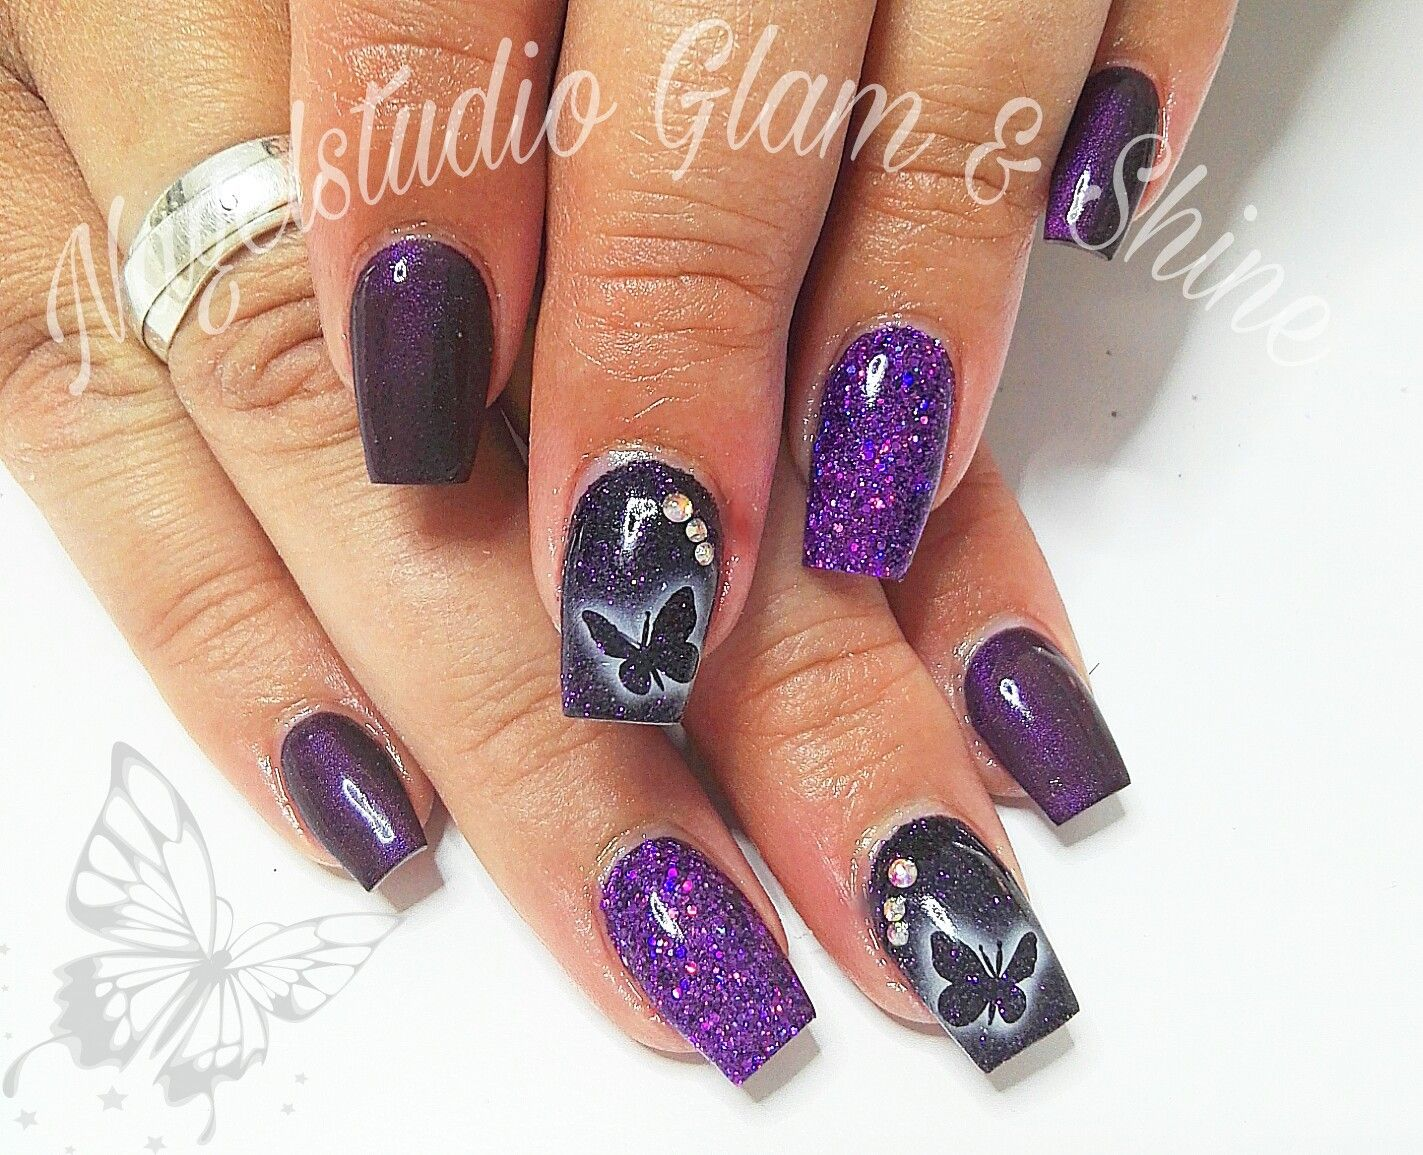 Pin by Valentina on ногти | Pinterest | Xmas nails, Nail decals and ...